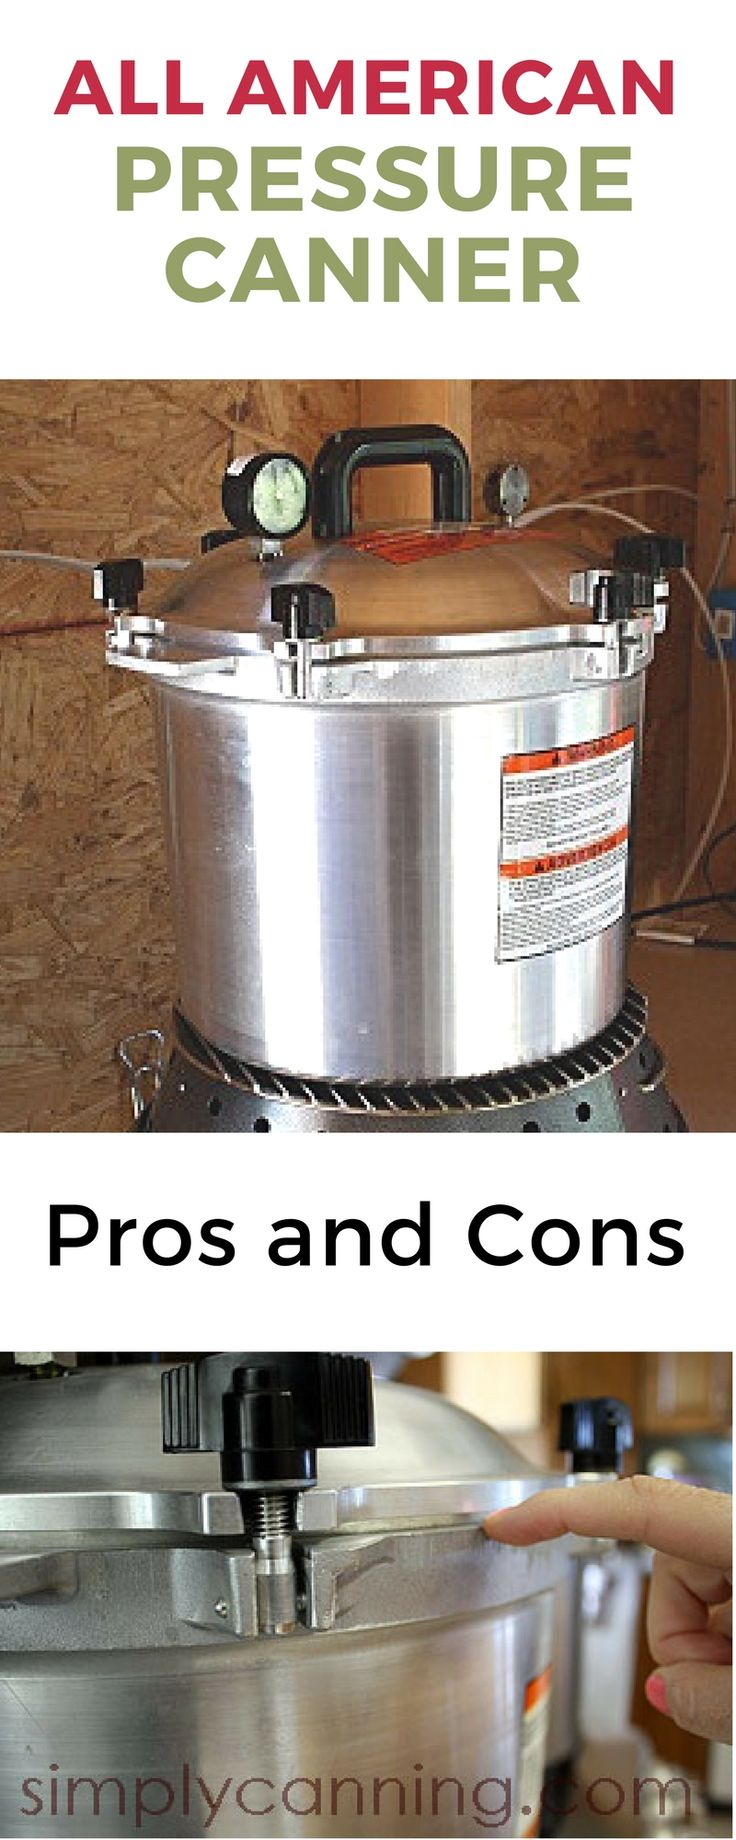 I own both the All American and Presto Pressure Canner, both are good canners. However if I had to only have one.... http://www.simplycanning.com/all-american-pressure-canner.html